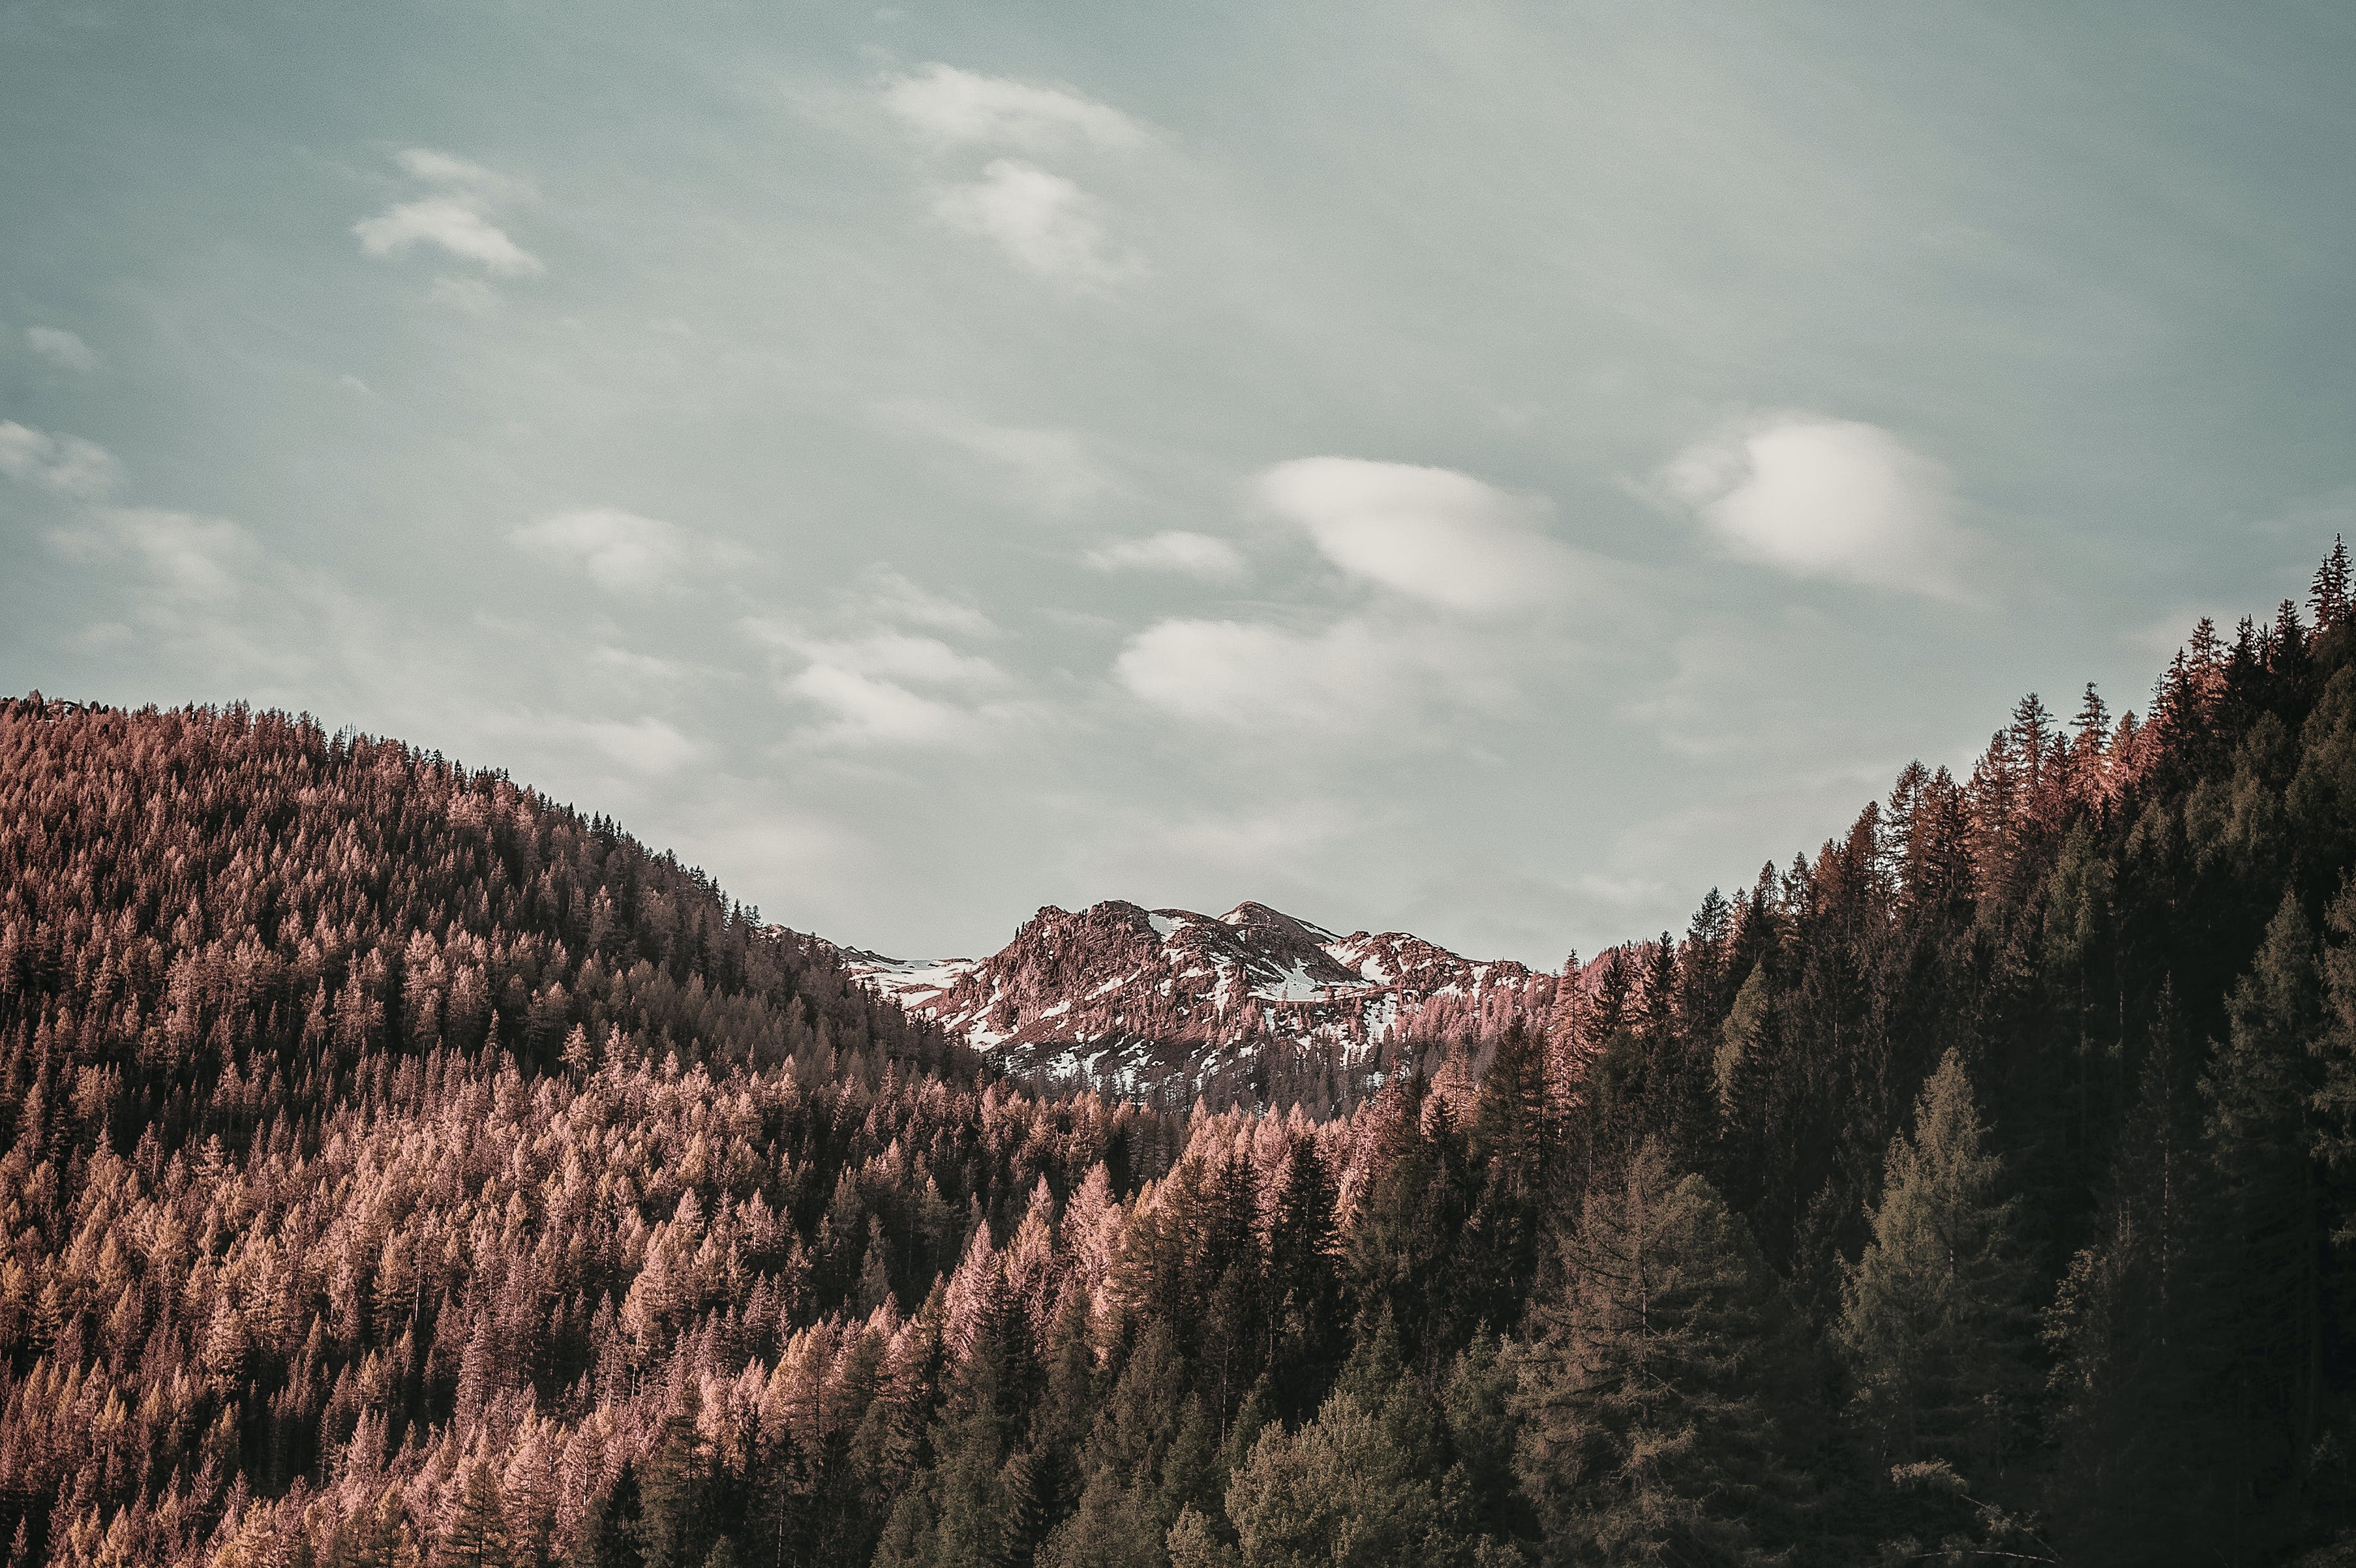 Brown Leafed Trees on Top of Mountain